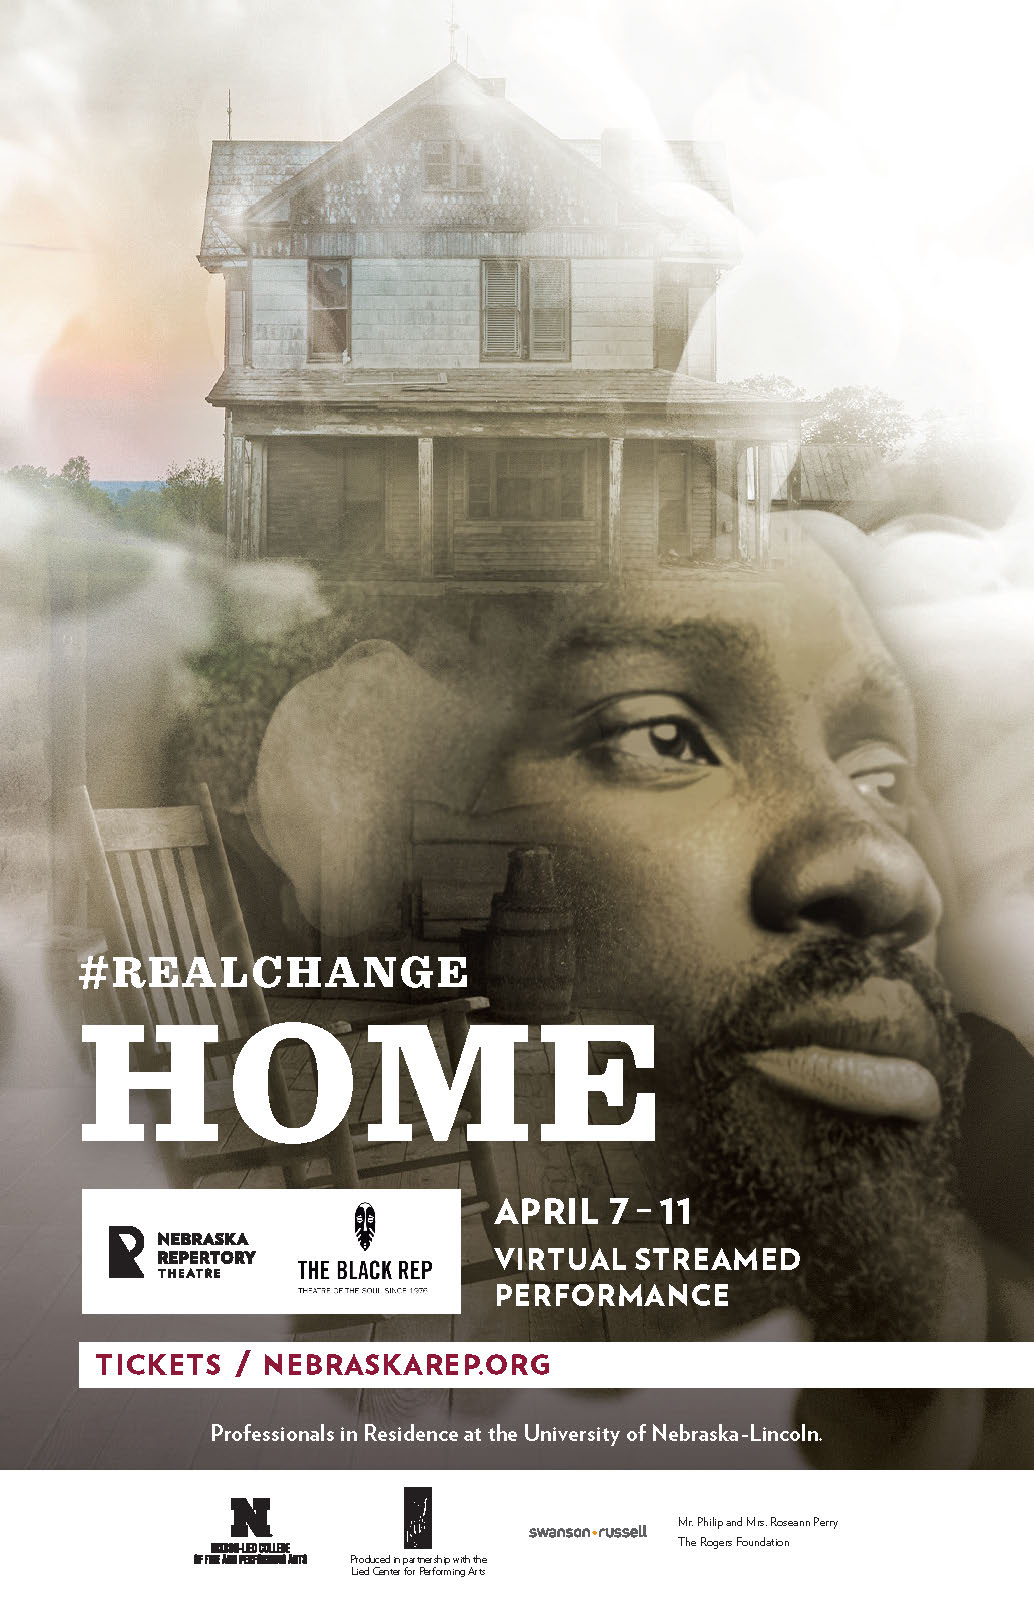 A poster for a play titled 'Home'. Superimposed over a misty background are a black man's face, a home in a wide field, and a rocking chair on a porch.